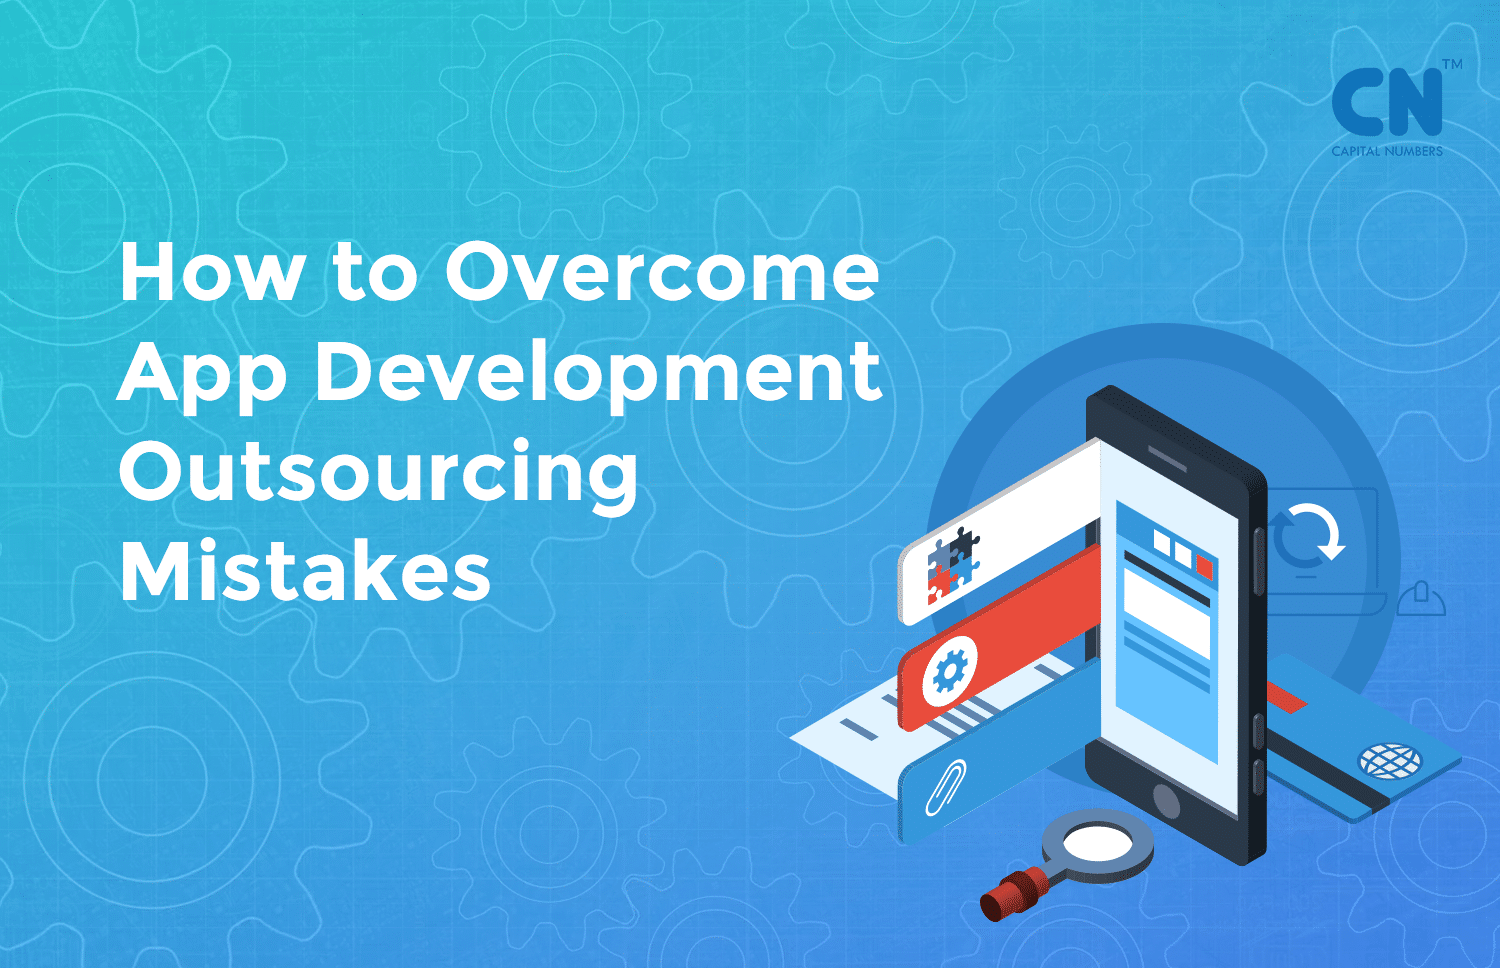 How To Overcome App Development Outsourcing Mistakes